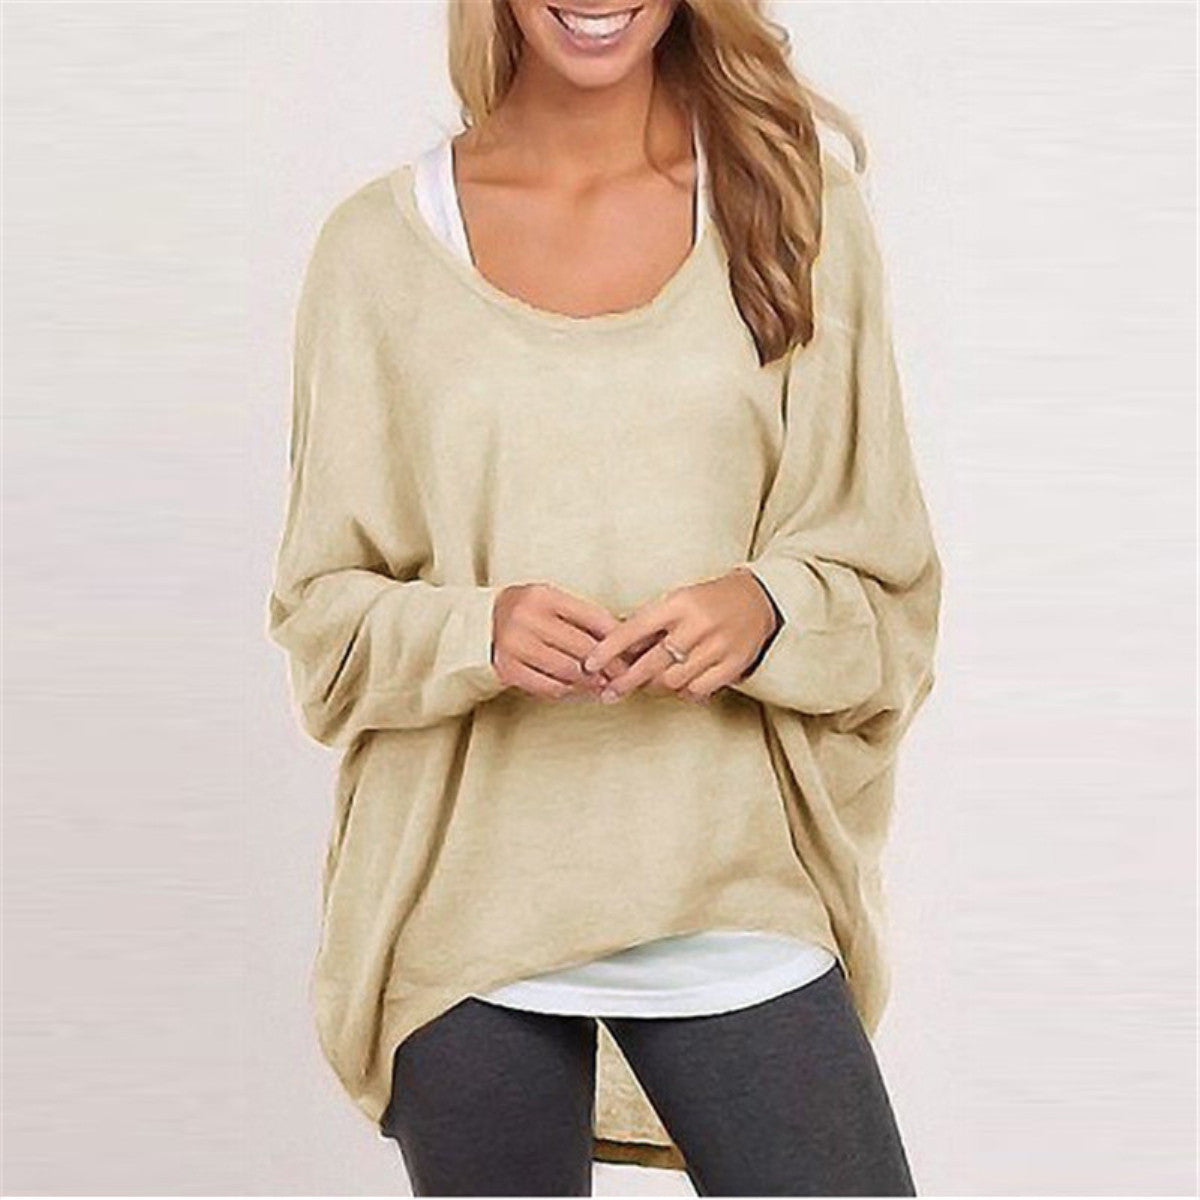 Beige / SWomen Sweater Jumper Pullover Batwing Long Sleeve Casual Loose Solid Blouse Shirt Top Plus